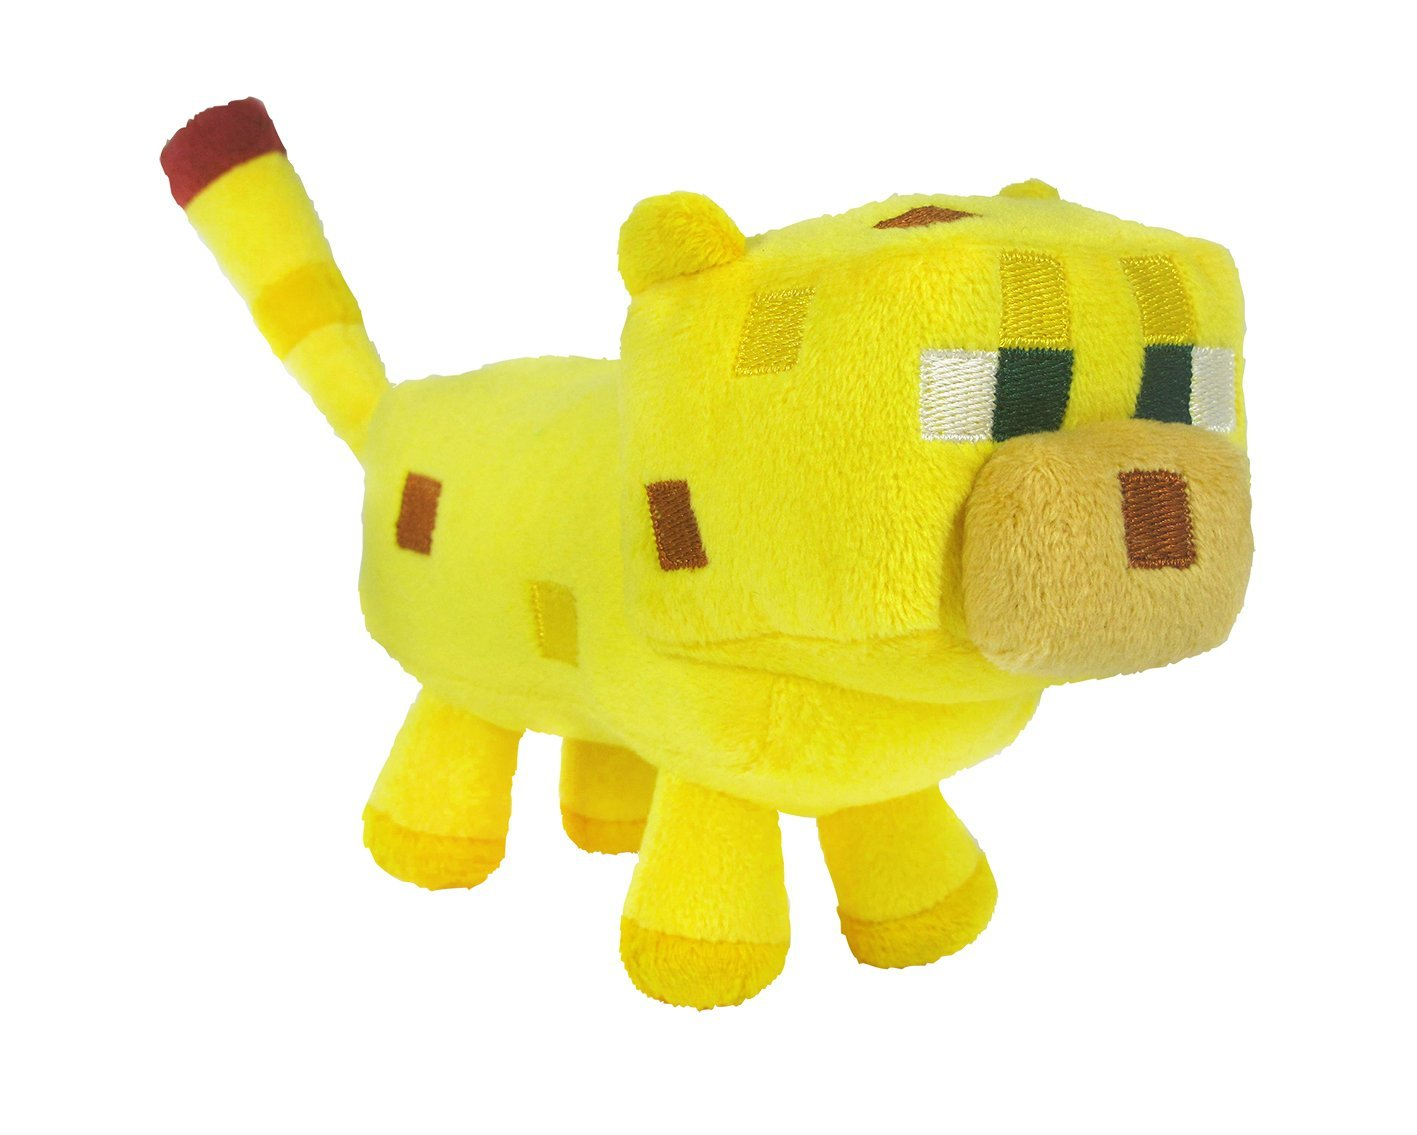 Plush Stuffed Animal Toys : Minecraft plush toys stuffed animals and plushies for kids